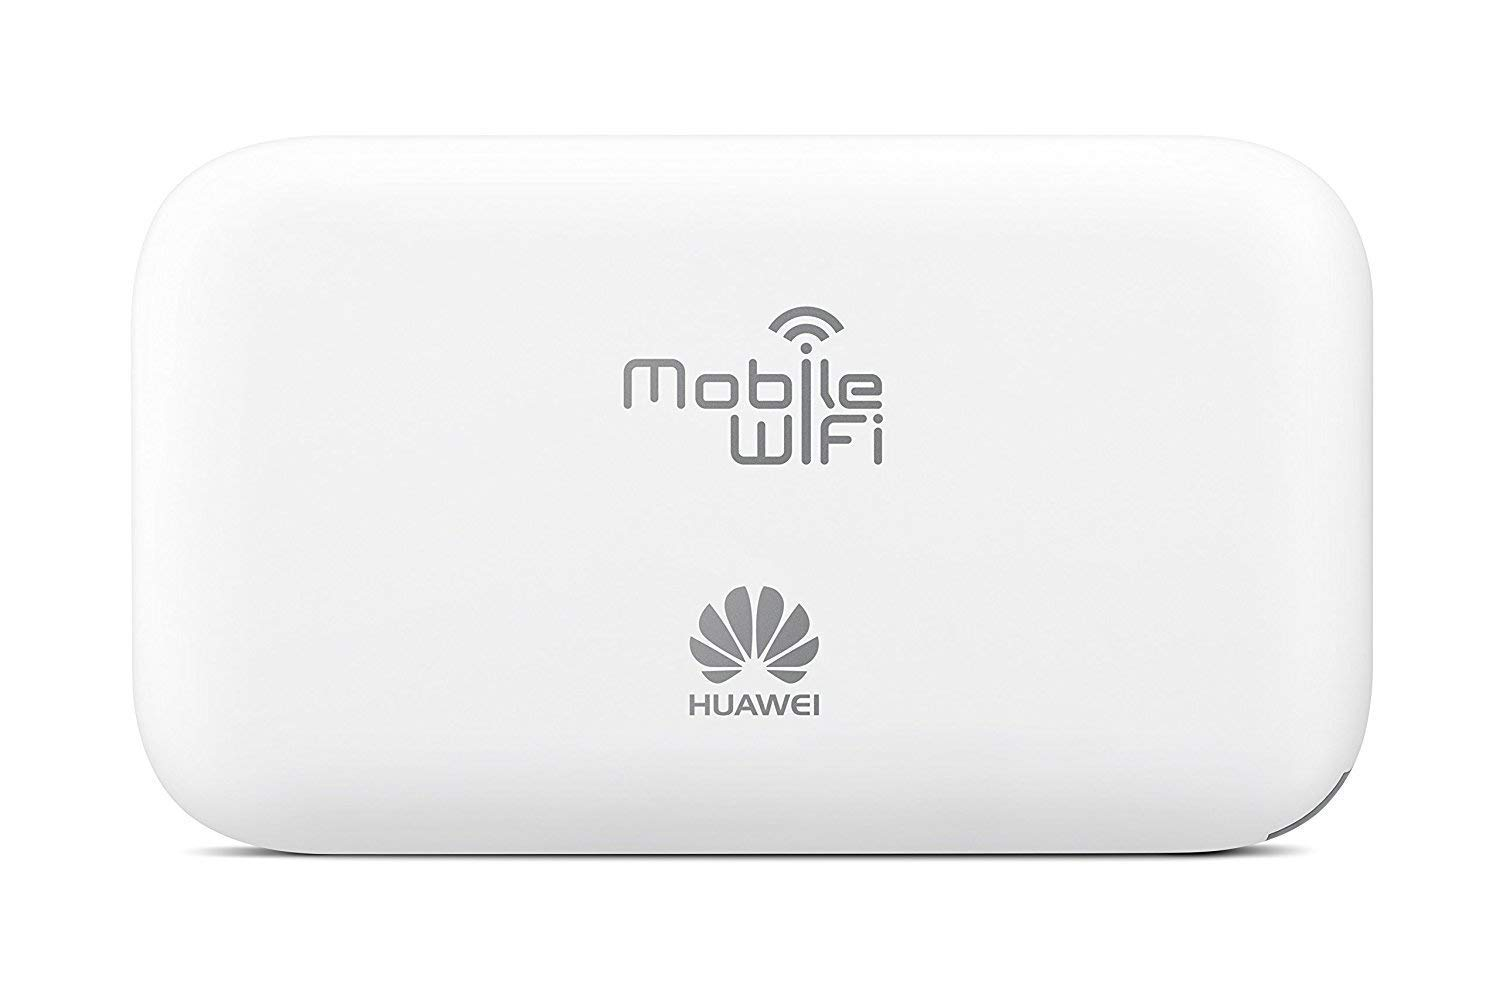 Huawei E5573cs 322 Unlocked 150 Mbps 4g Lte 50 Mpbs 3g Modem Wifi Mifi E5573 Unlock All Gsm Mobile In Europe Asia Middle East Africa And Partial Latam Cell